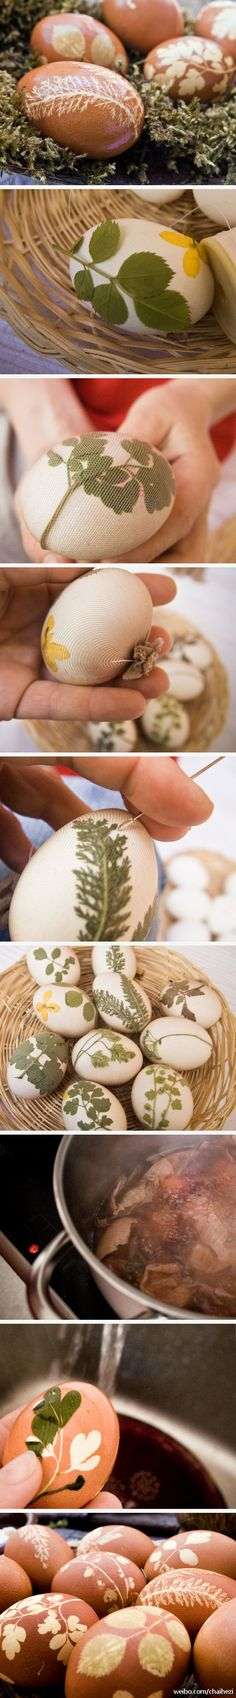 tea stained eggs. Directions in Chinese, but easy to follow photos.